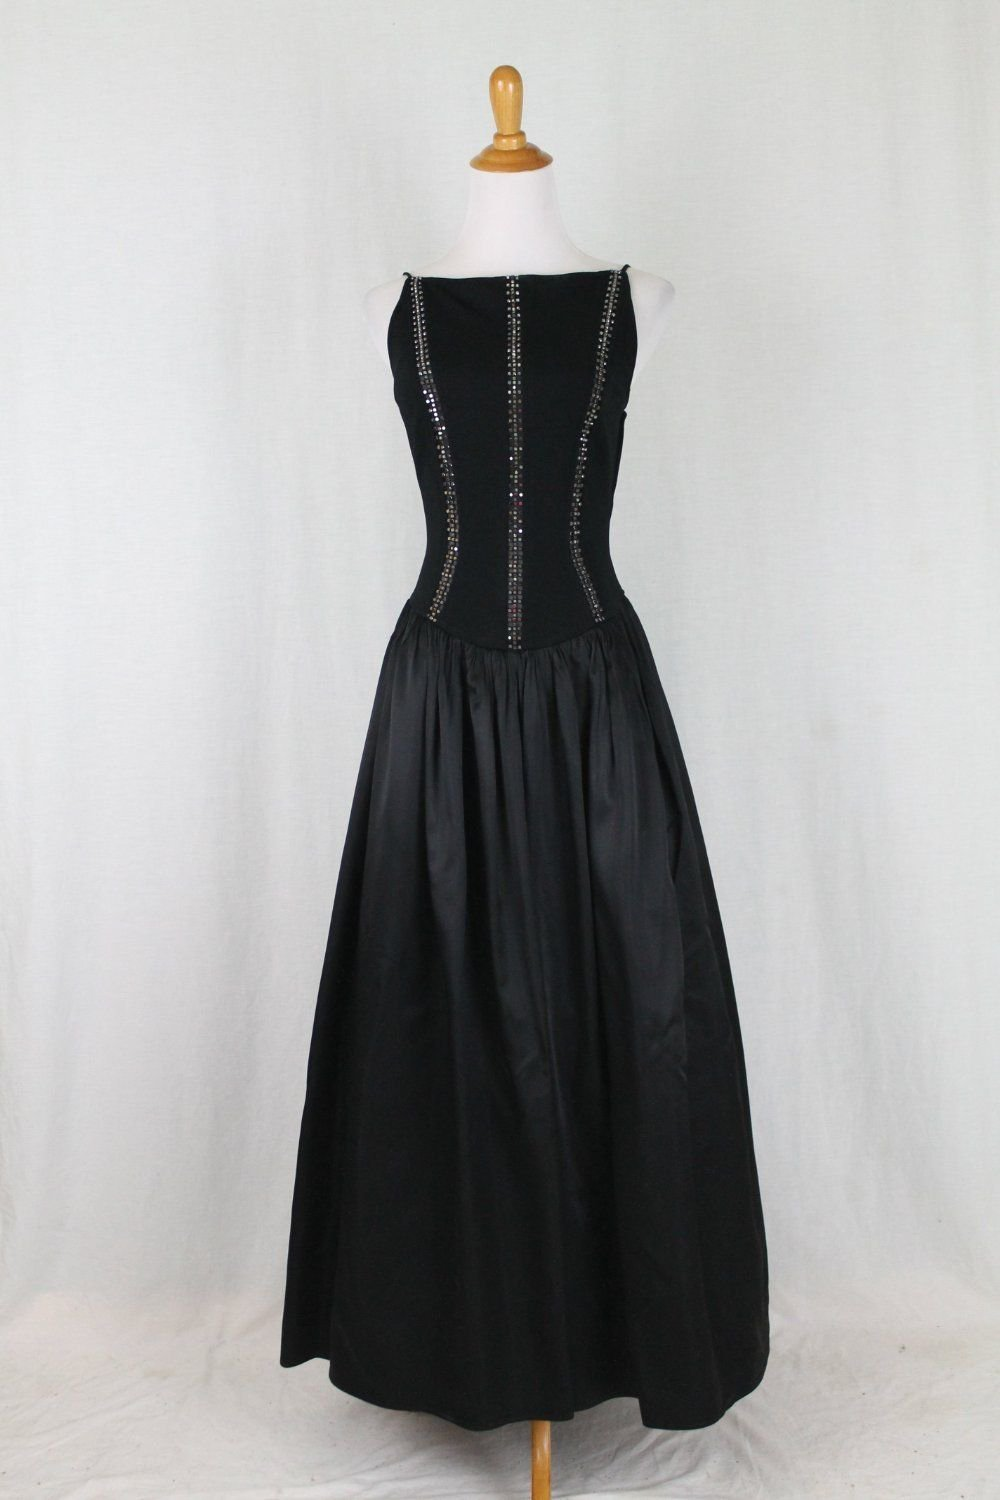 Cache Black Ballgown Full Length Spaghetti Straps Open Back Made in USA S